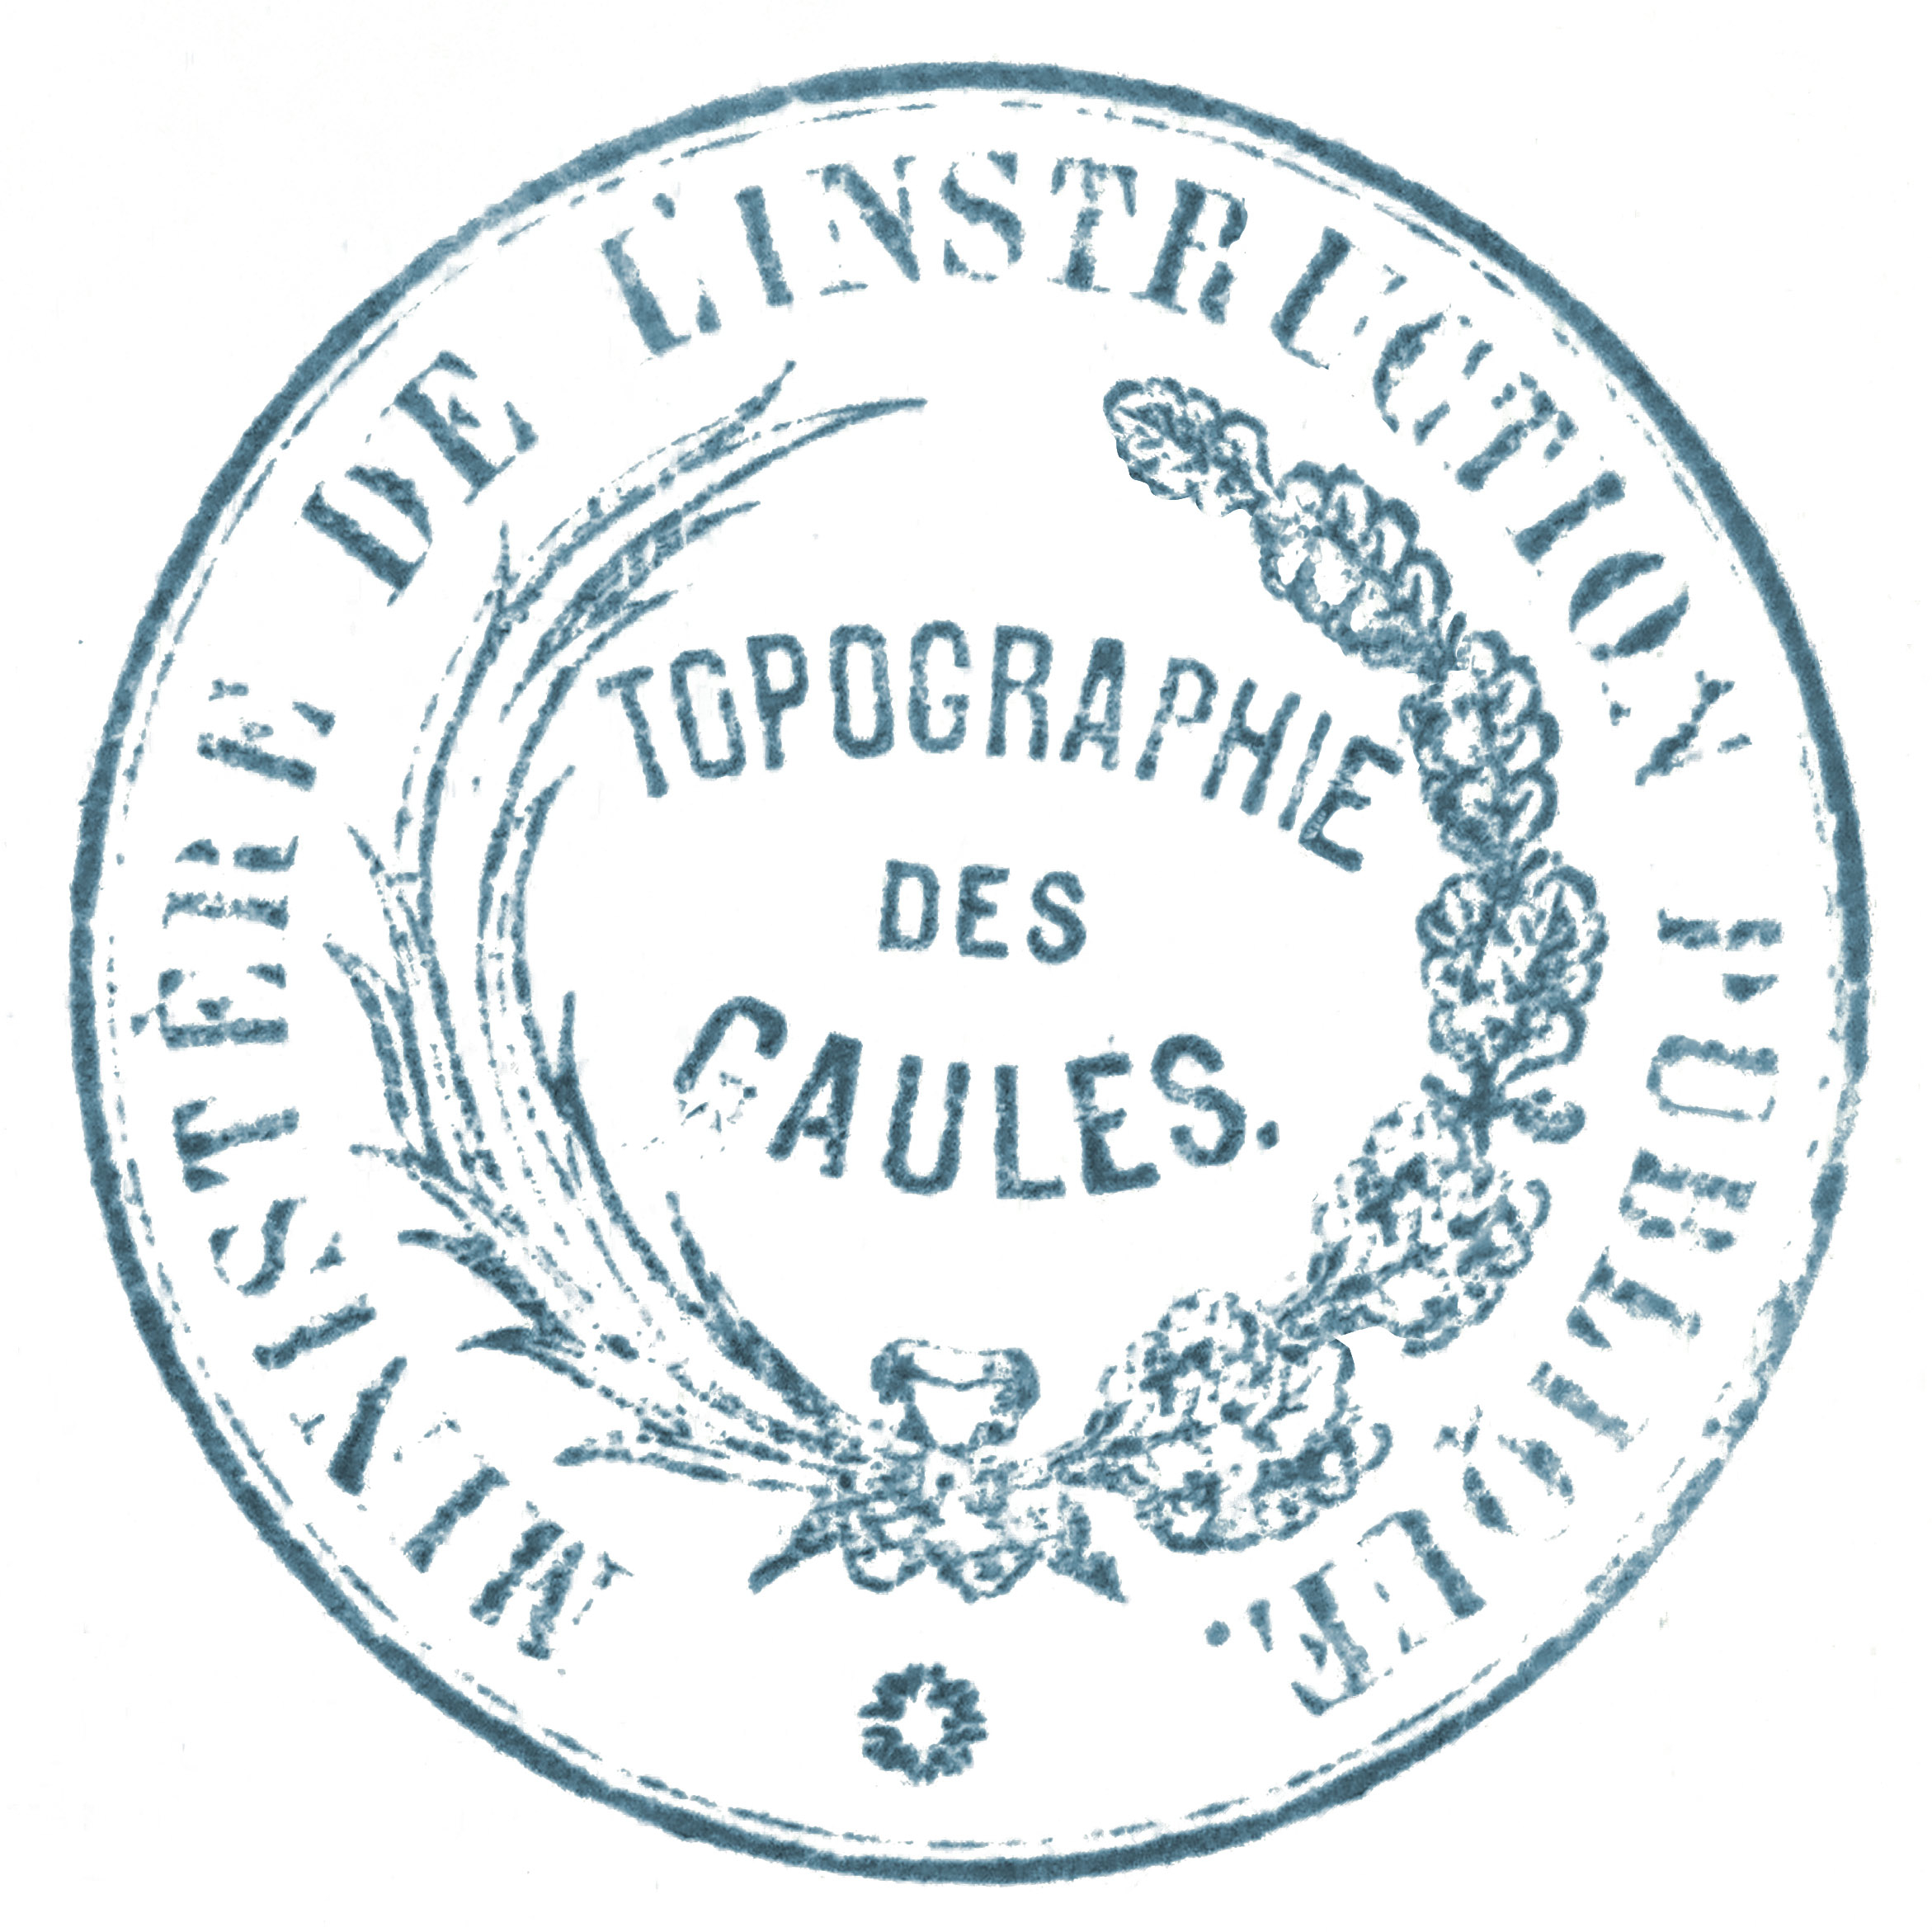 The Commission de Topographie des Gaules (1858-1879)